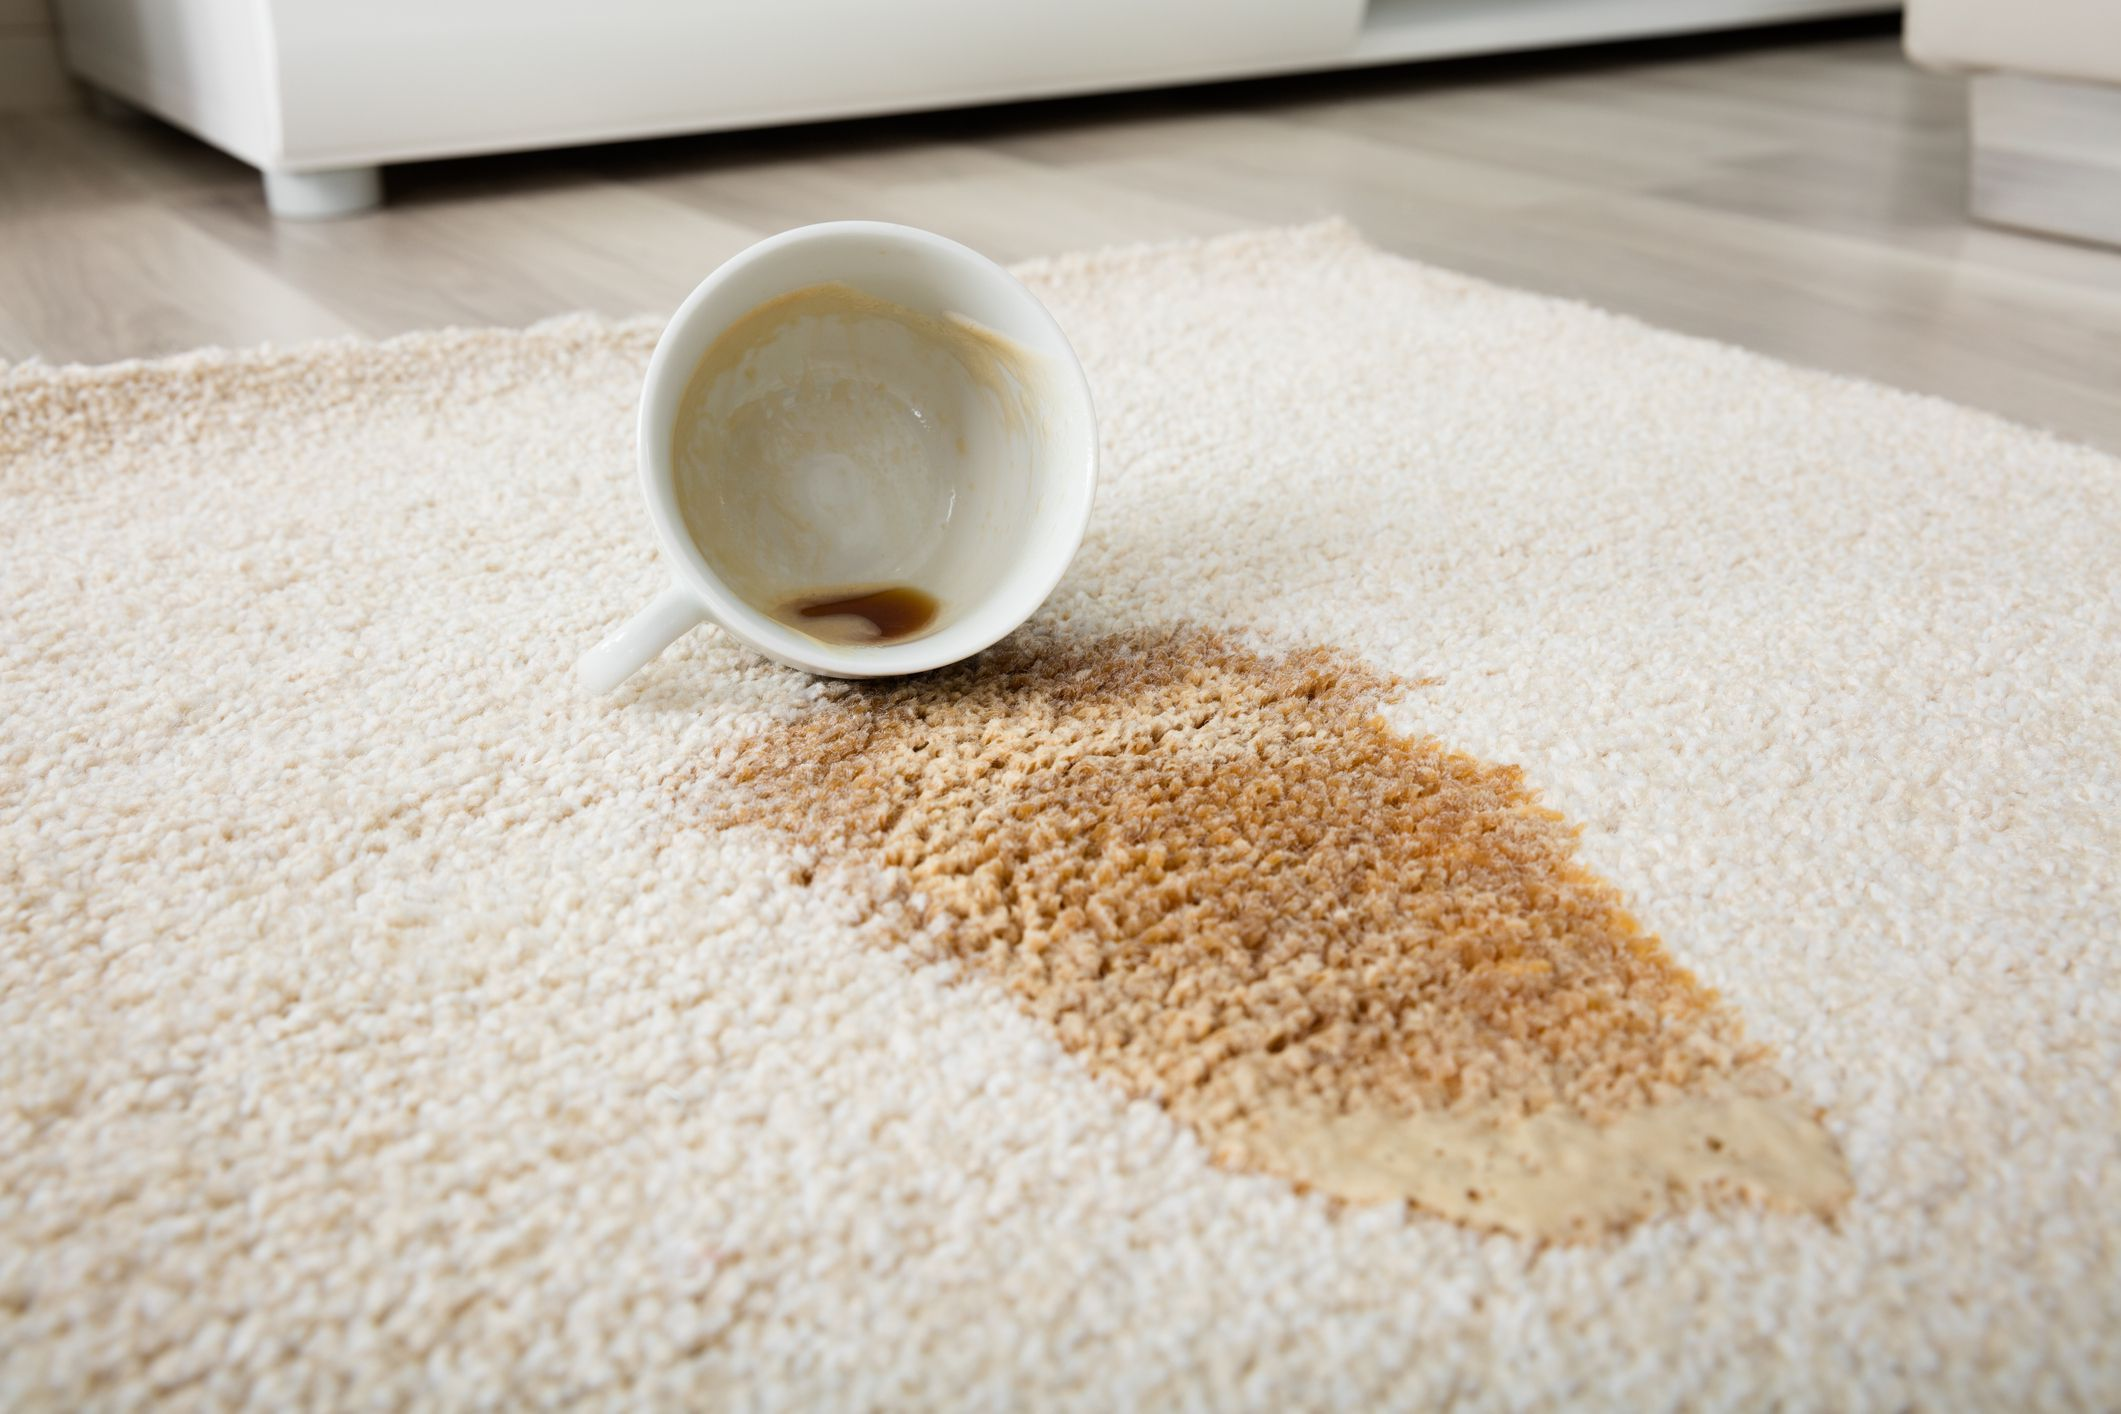 How To Get An Old Tea Stain Out Of Carpet